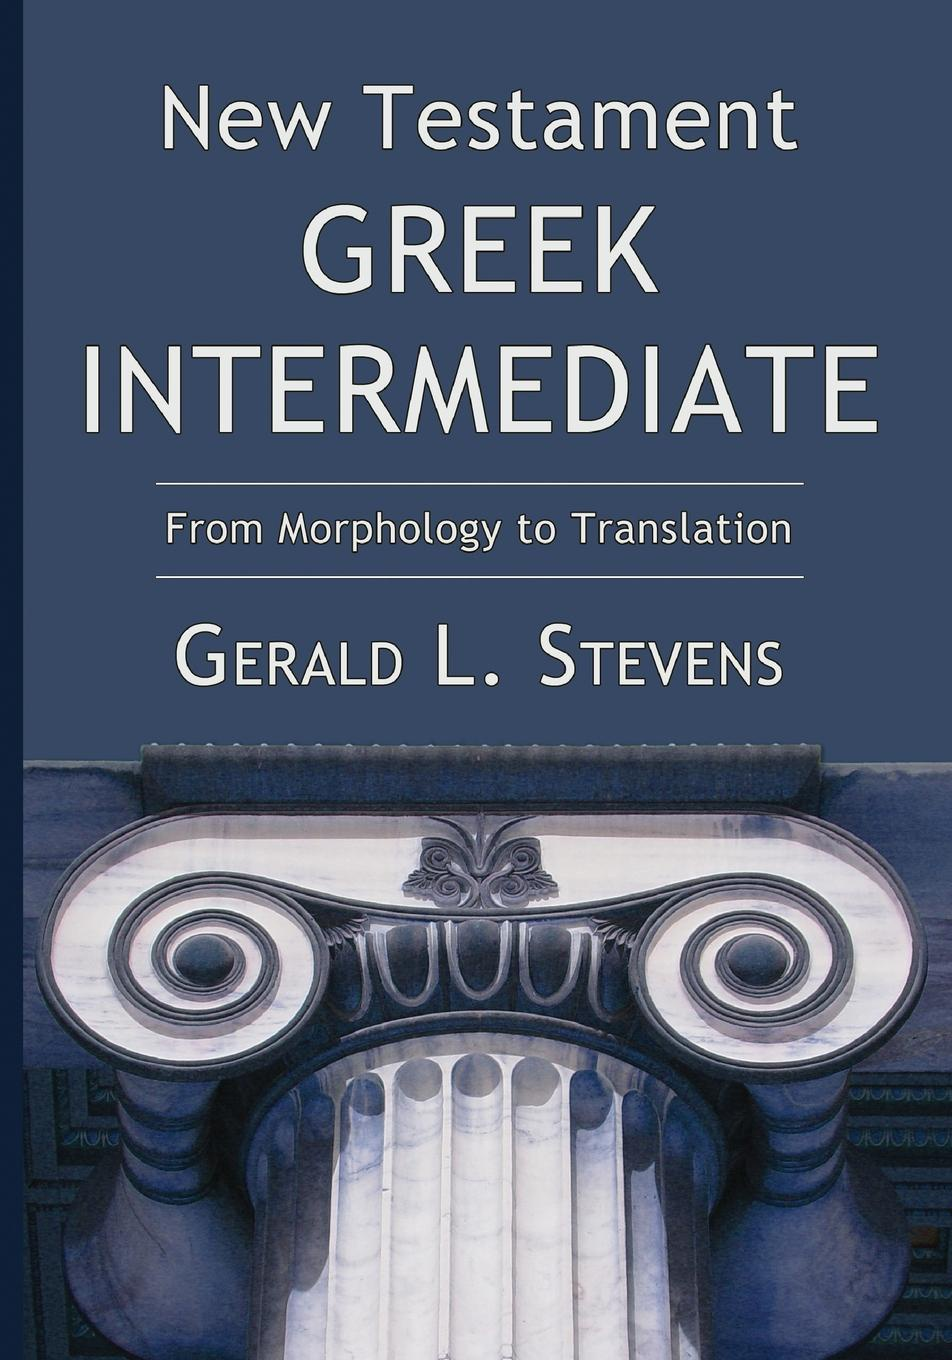 Gerald L. Stevens New Testament Greek Intermediate. From Morphology to Translation georg benedikt winer a treatise on the grammar of new testament greek regarded as a sure basis for new testament exegesis